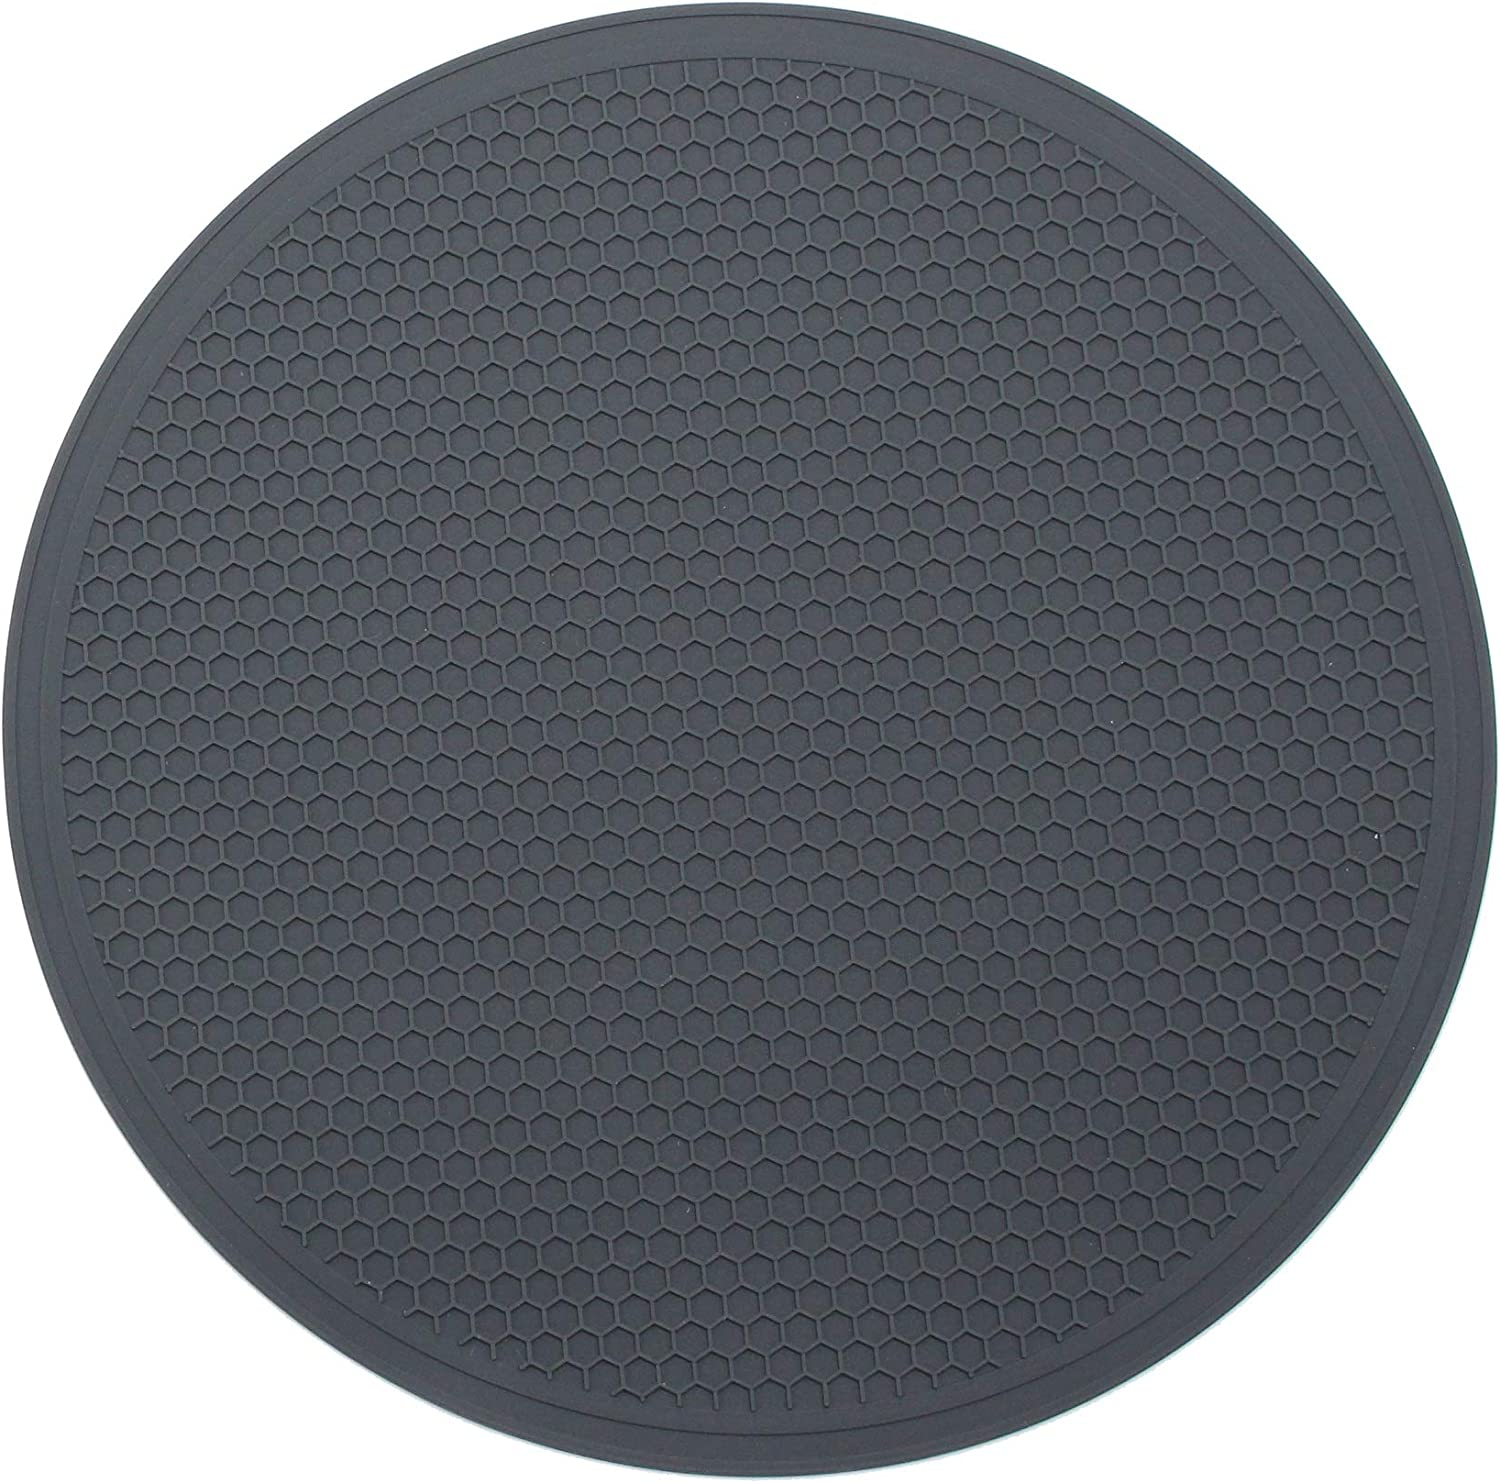 Tongjude Silicone Microwave Mat - 11.7